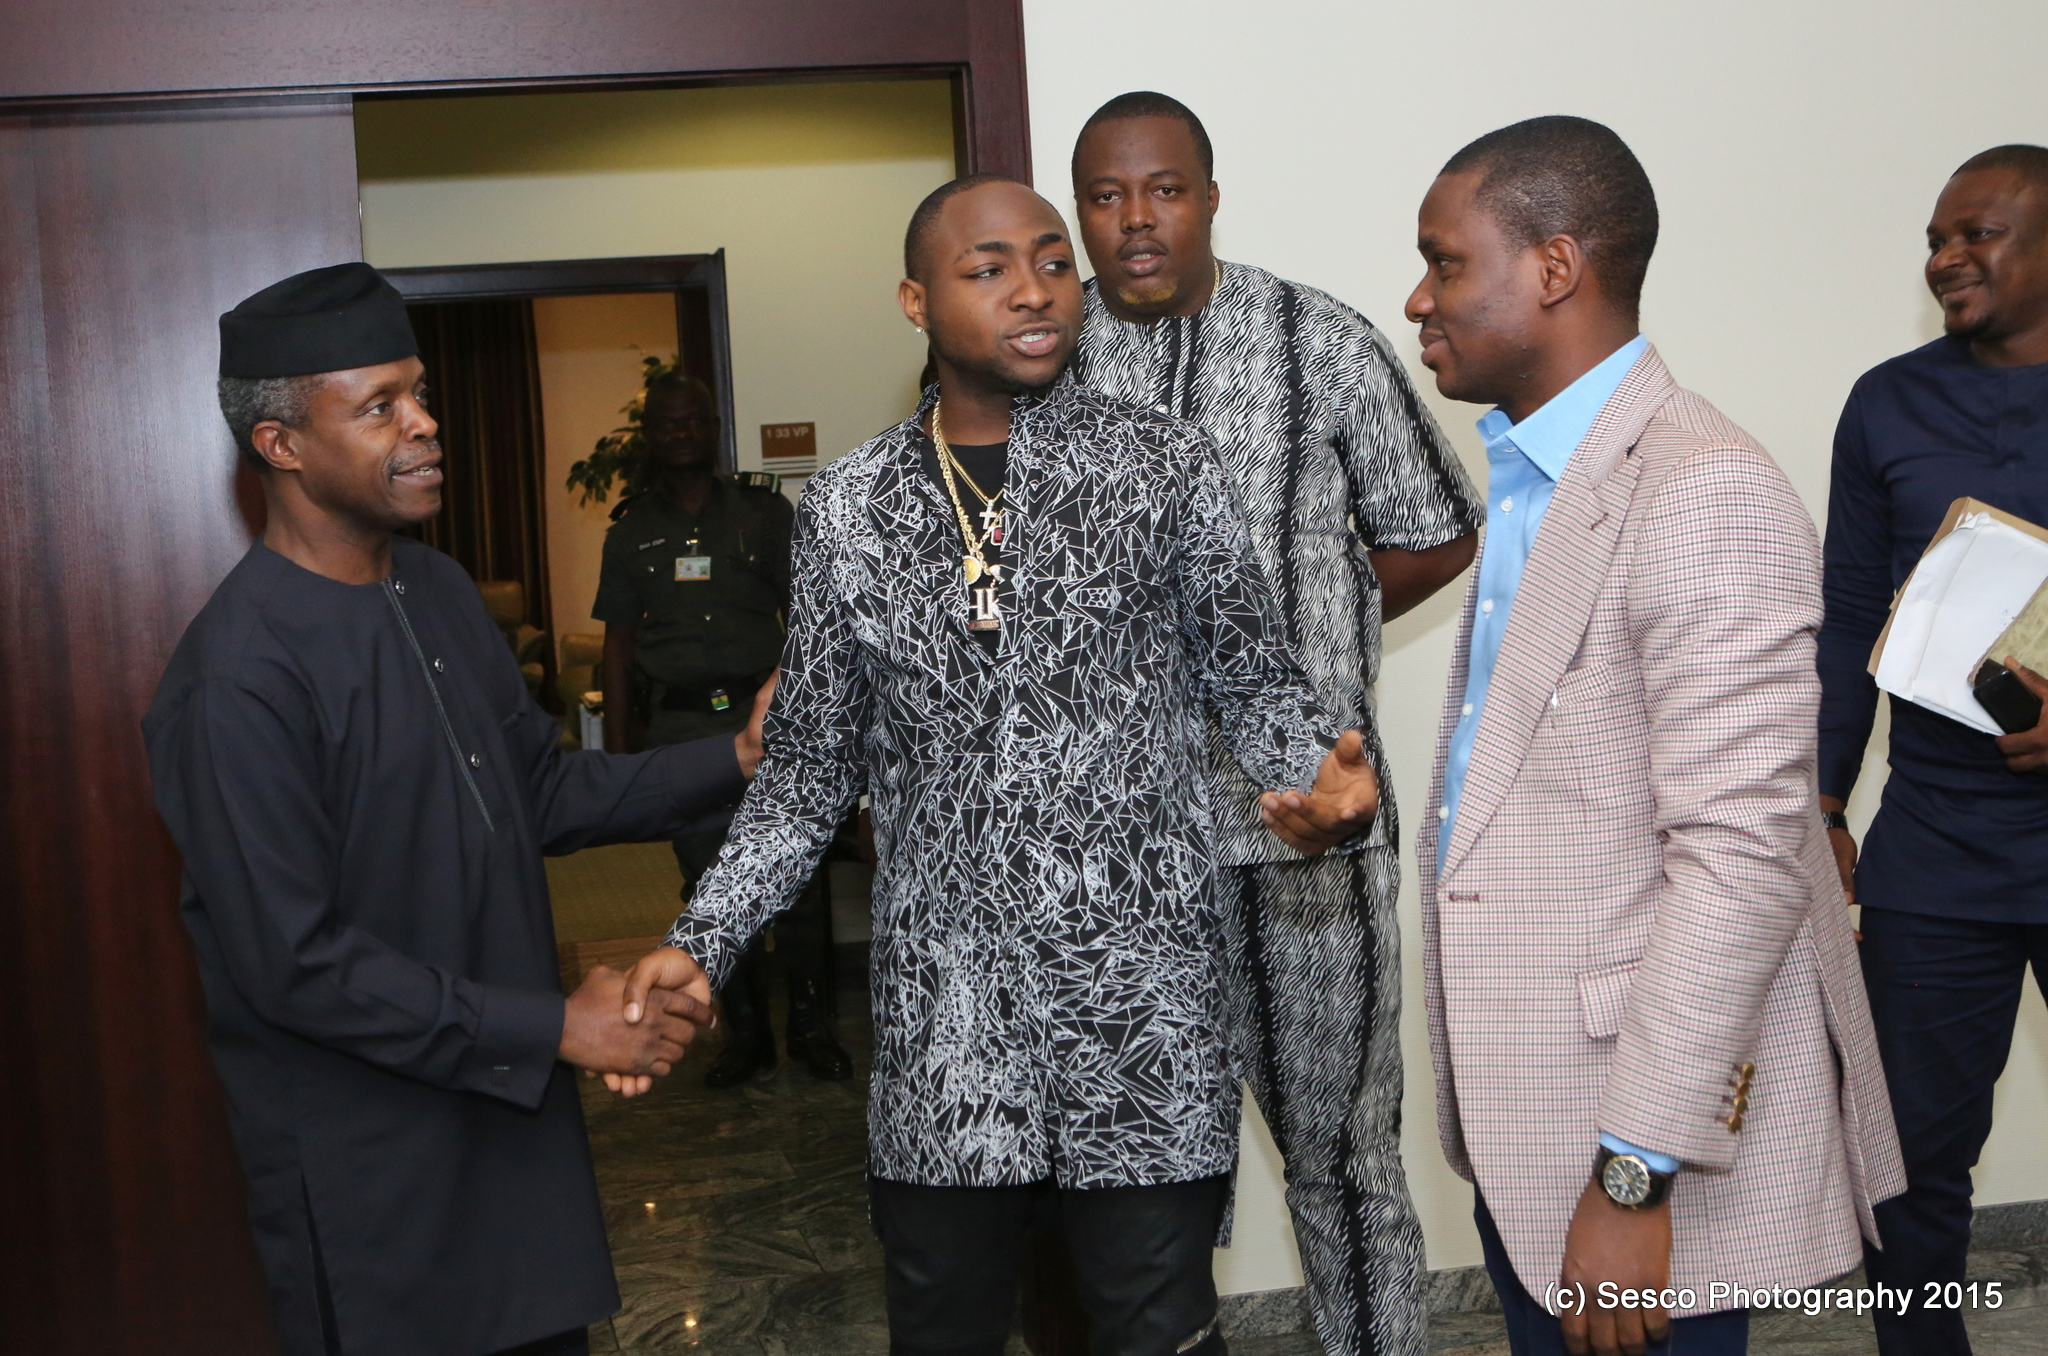 VP Osinbajo Meets With Davido In The State House On 11/08/2015